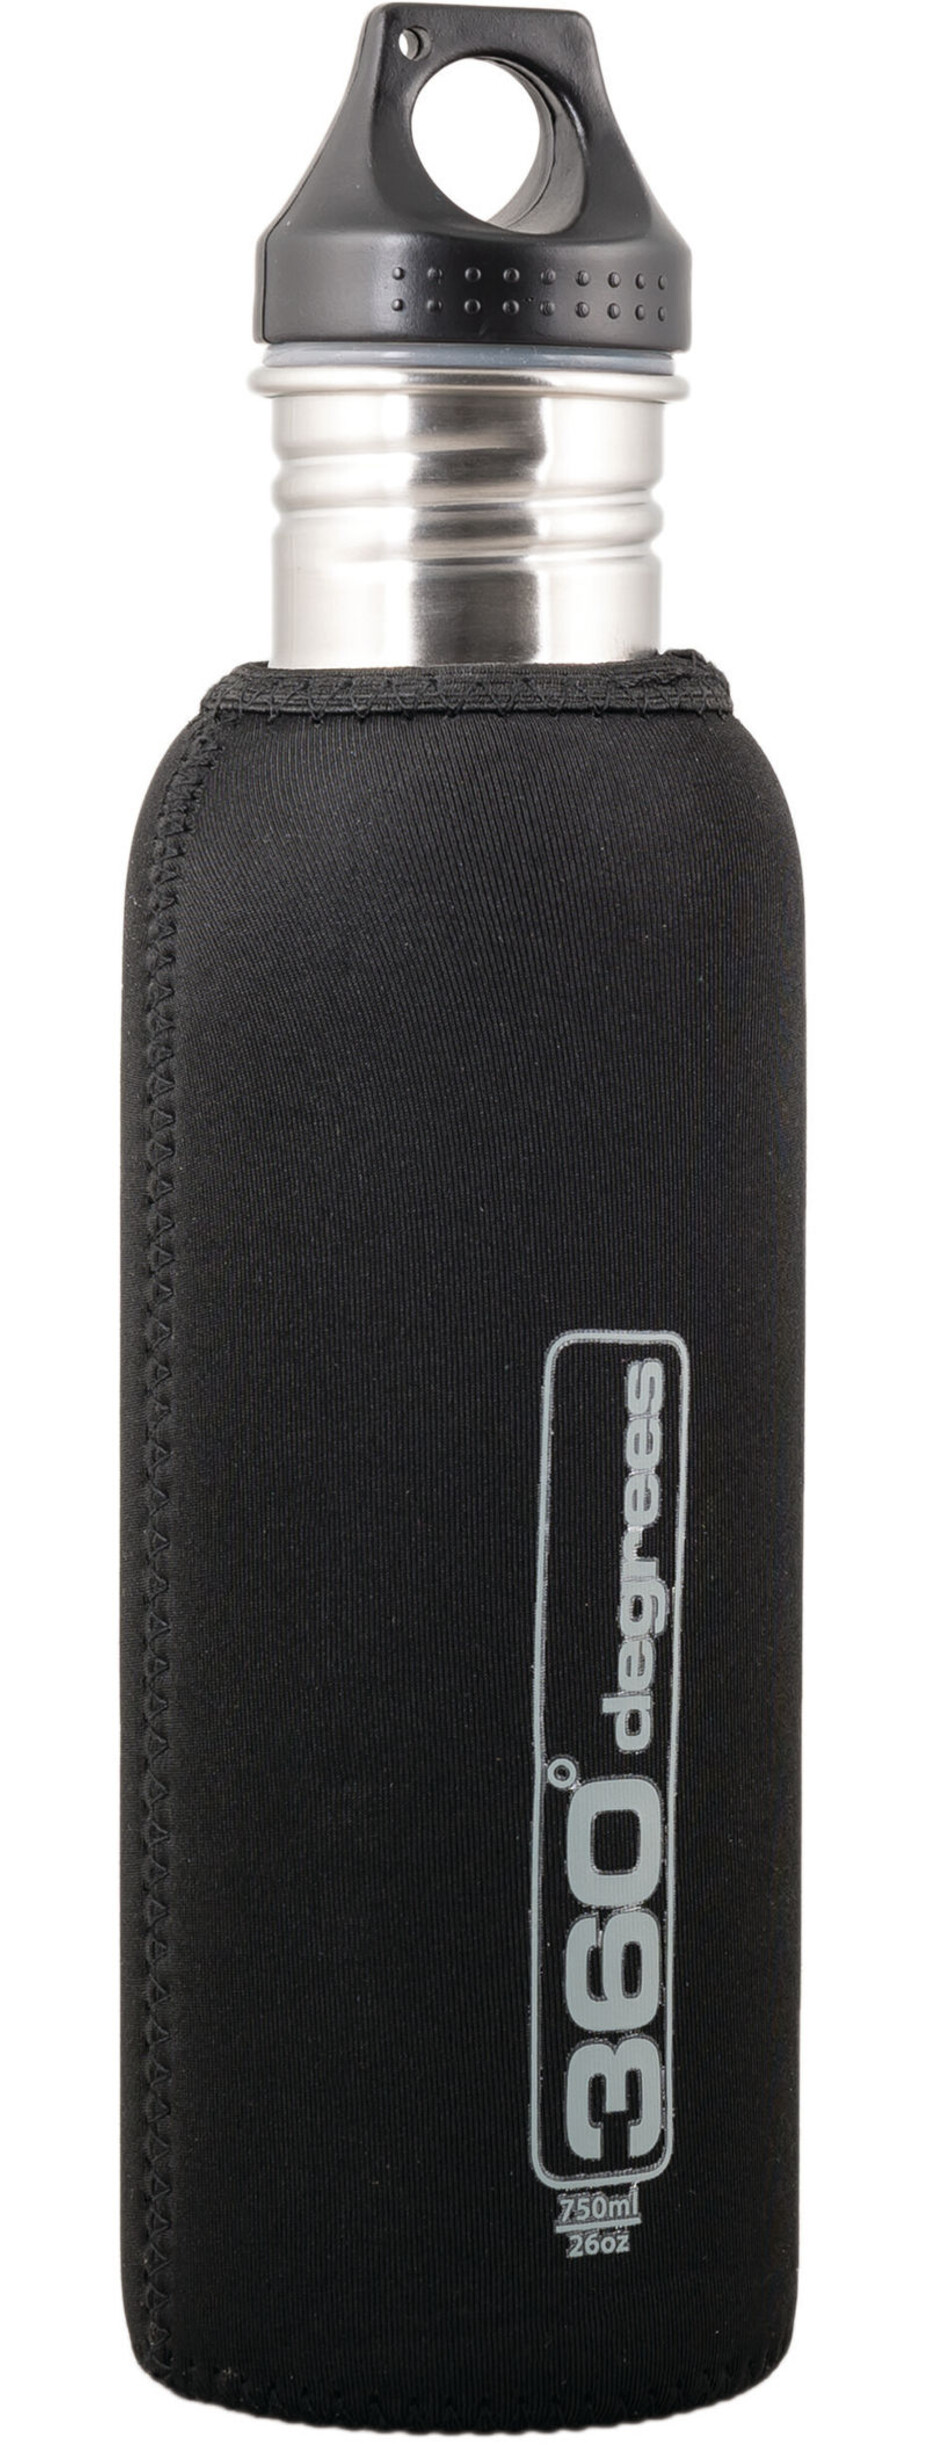 360 degrees stainless drink bottle neoprene pouch 750ml. Black Bedroom Furniture Sets. Home Design Ideas